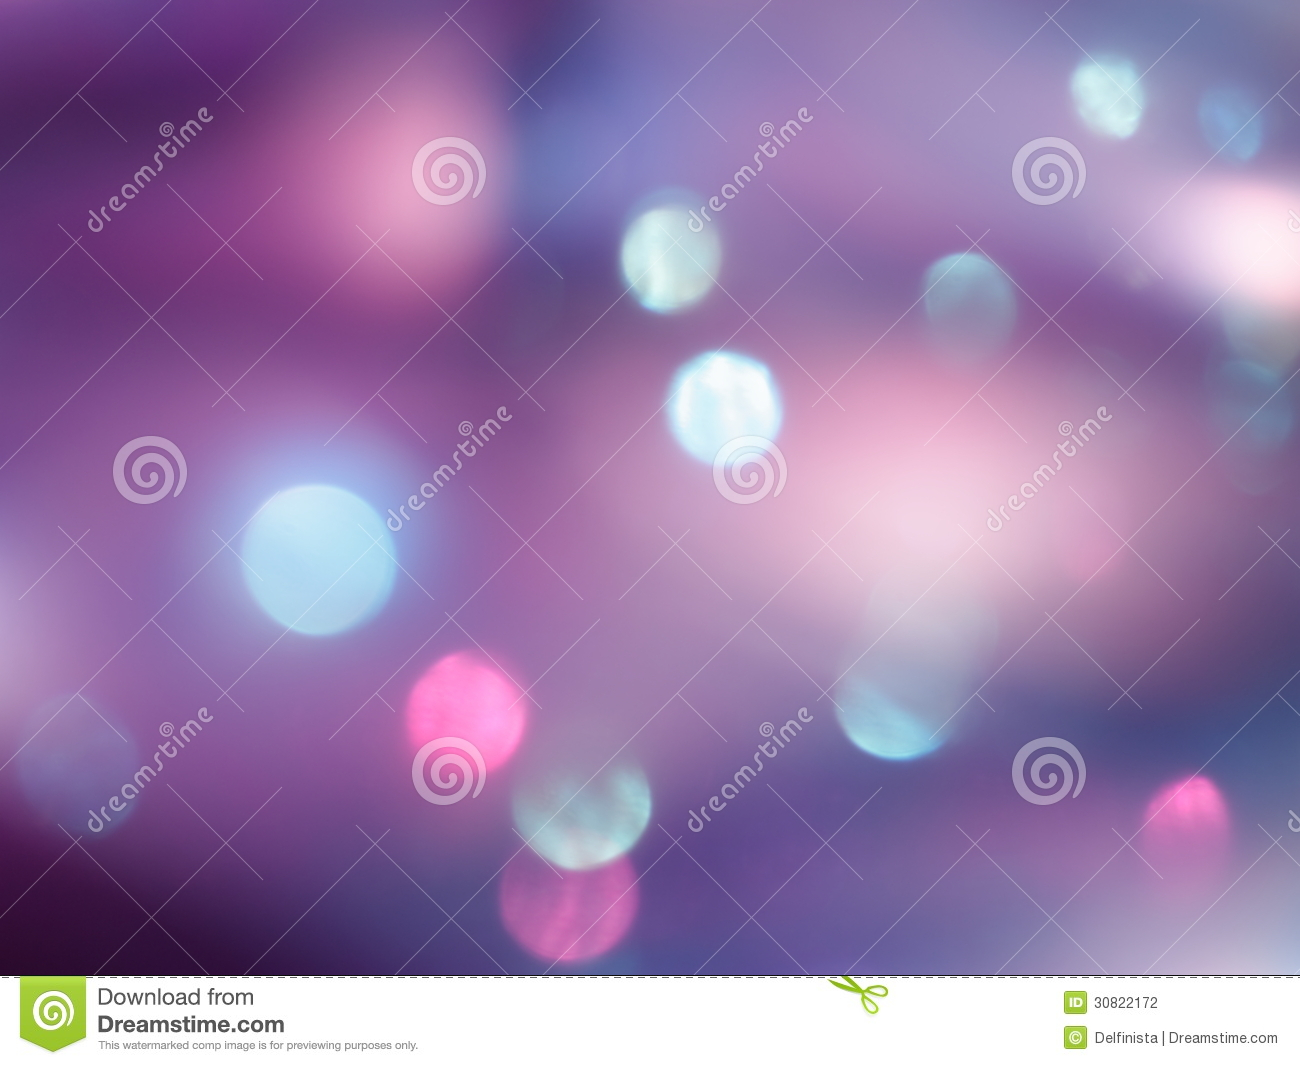 Free Download Pink Purple And Blue Wallpapers 1300x1065 For Your